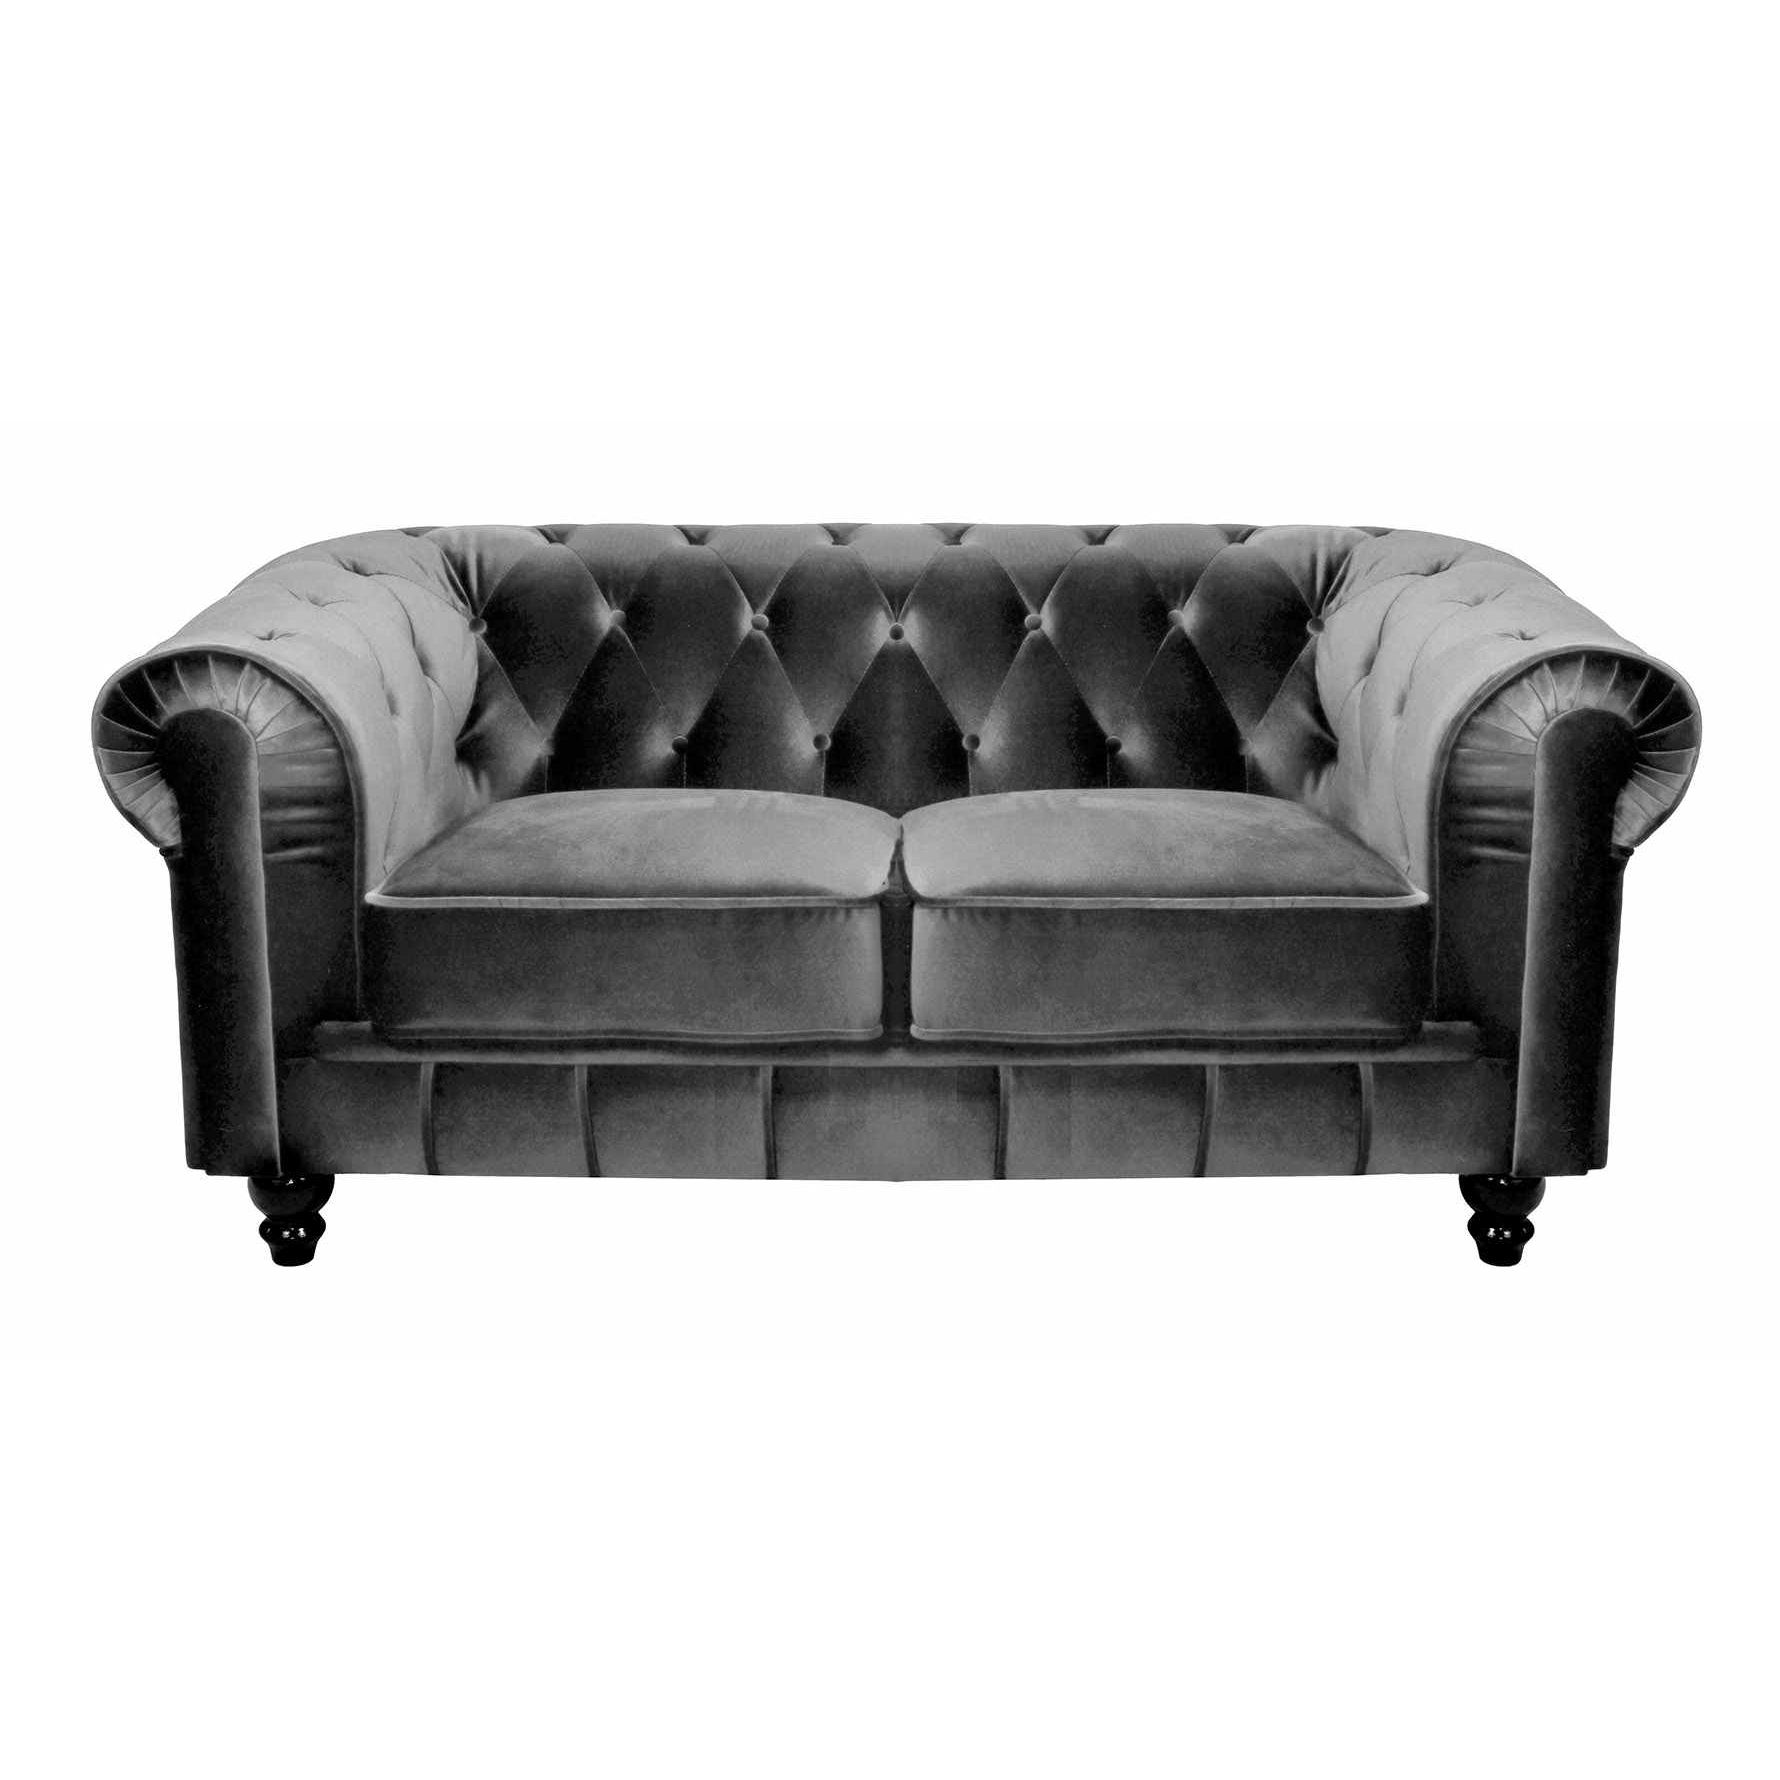 Deco in paris canape 2 places velours gris chesterfield - Canape chesterfield velour ...